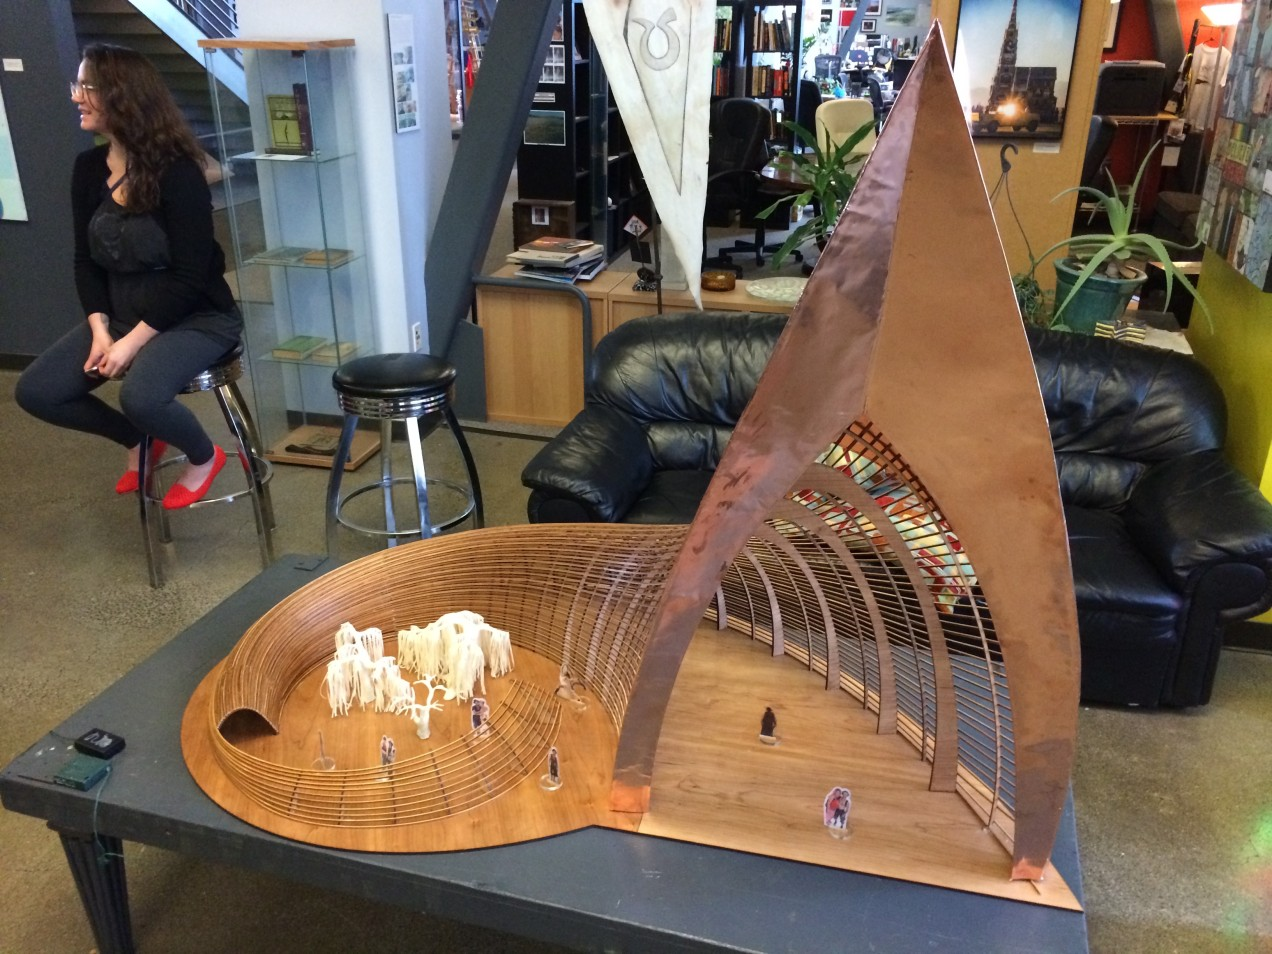 2015 Burning Man temple model